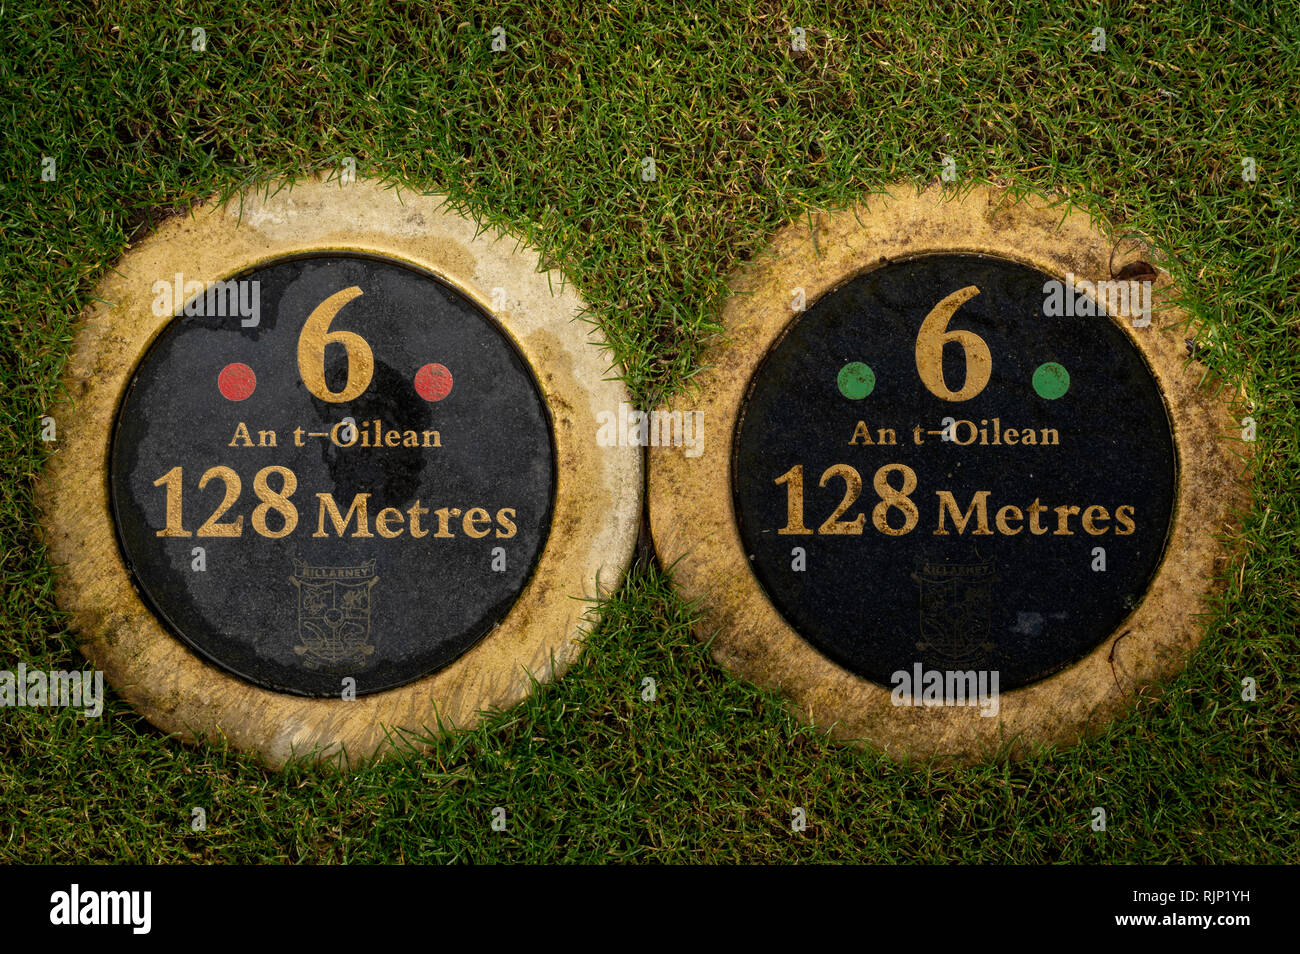 Tee marker markers. Golf course tee distance marker in meters. Killarney Golf and fishing club County Kerry Ireland. Tee golf box on the ground. - Stock Image